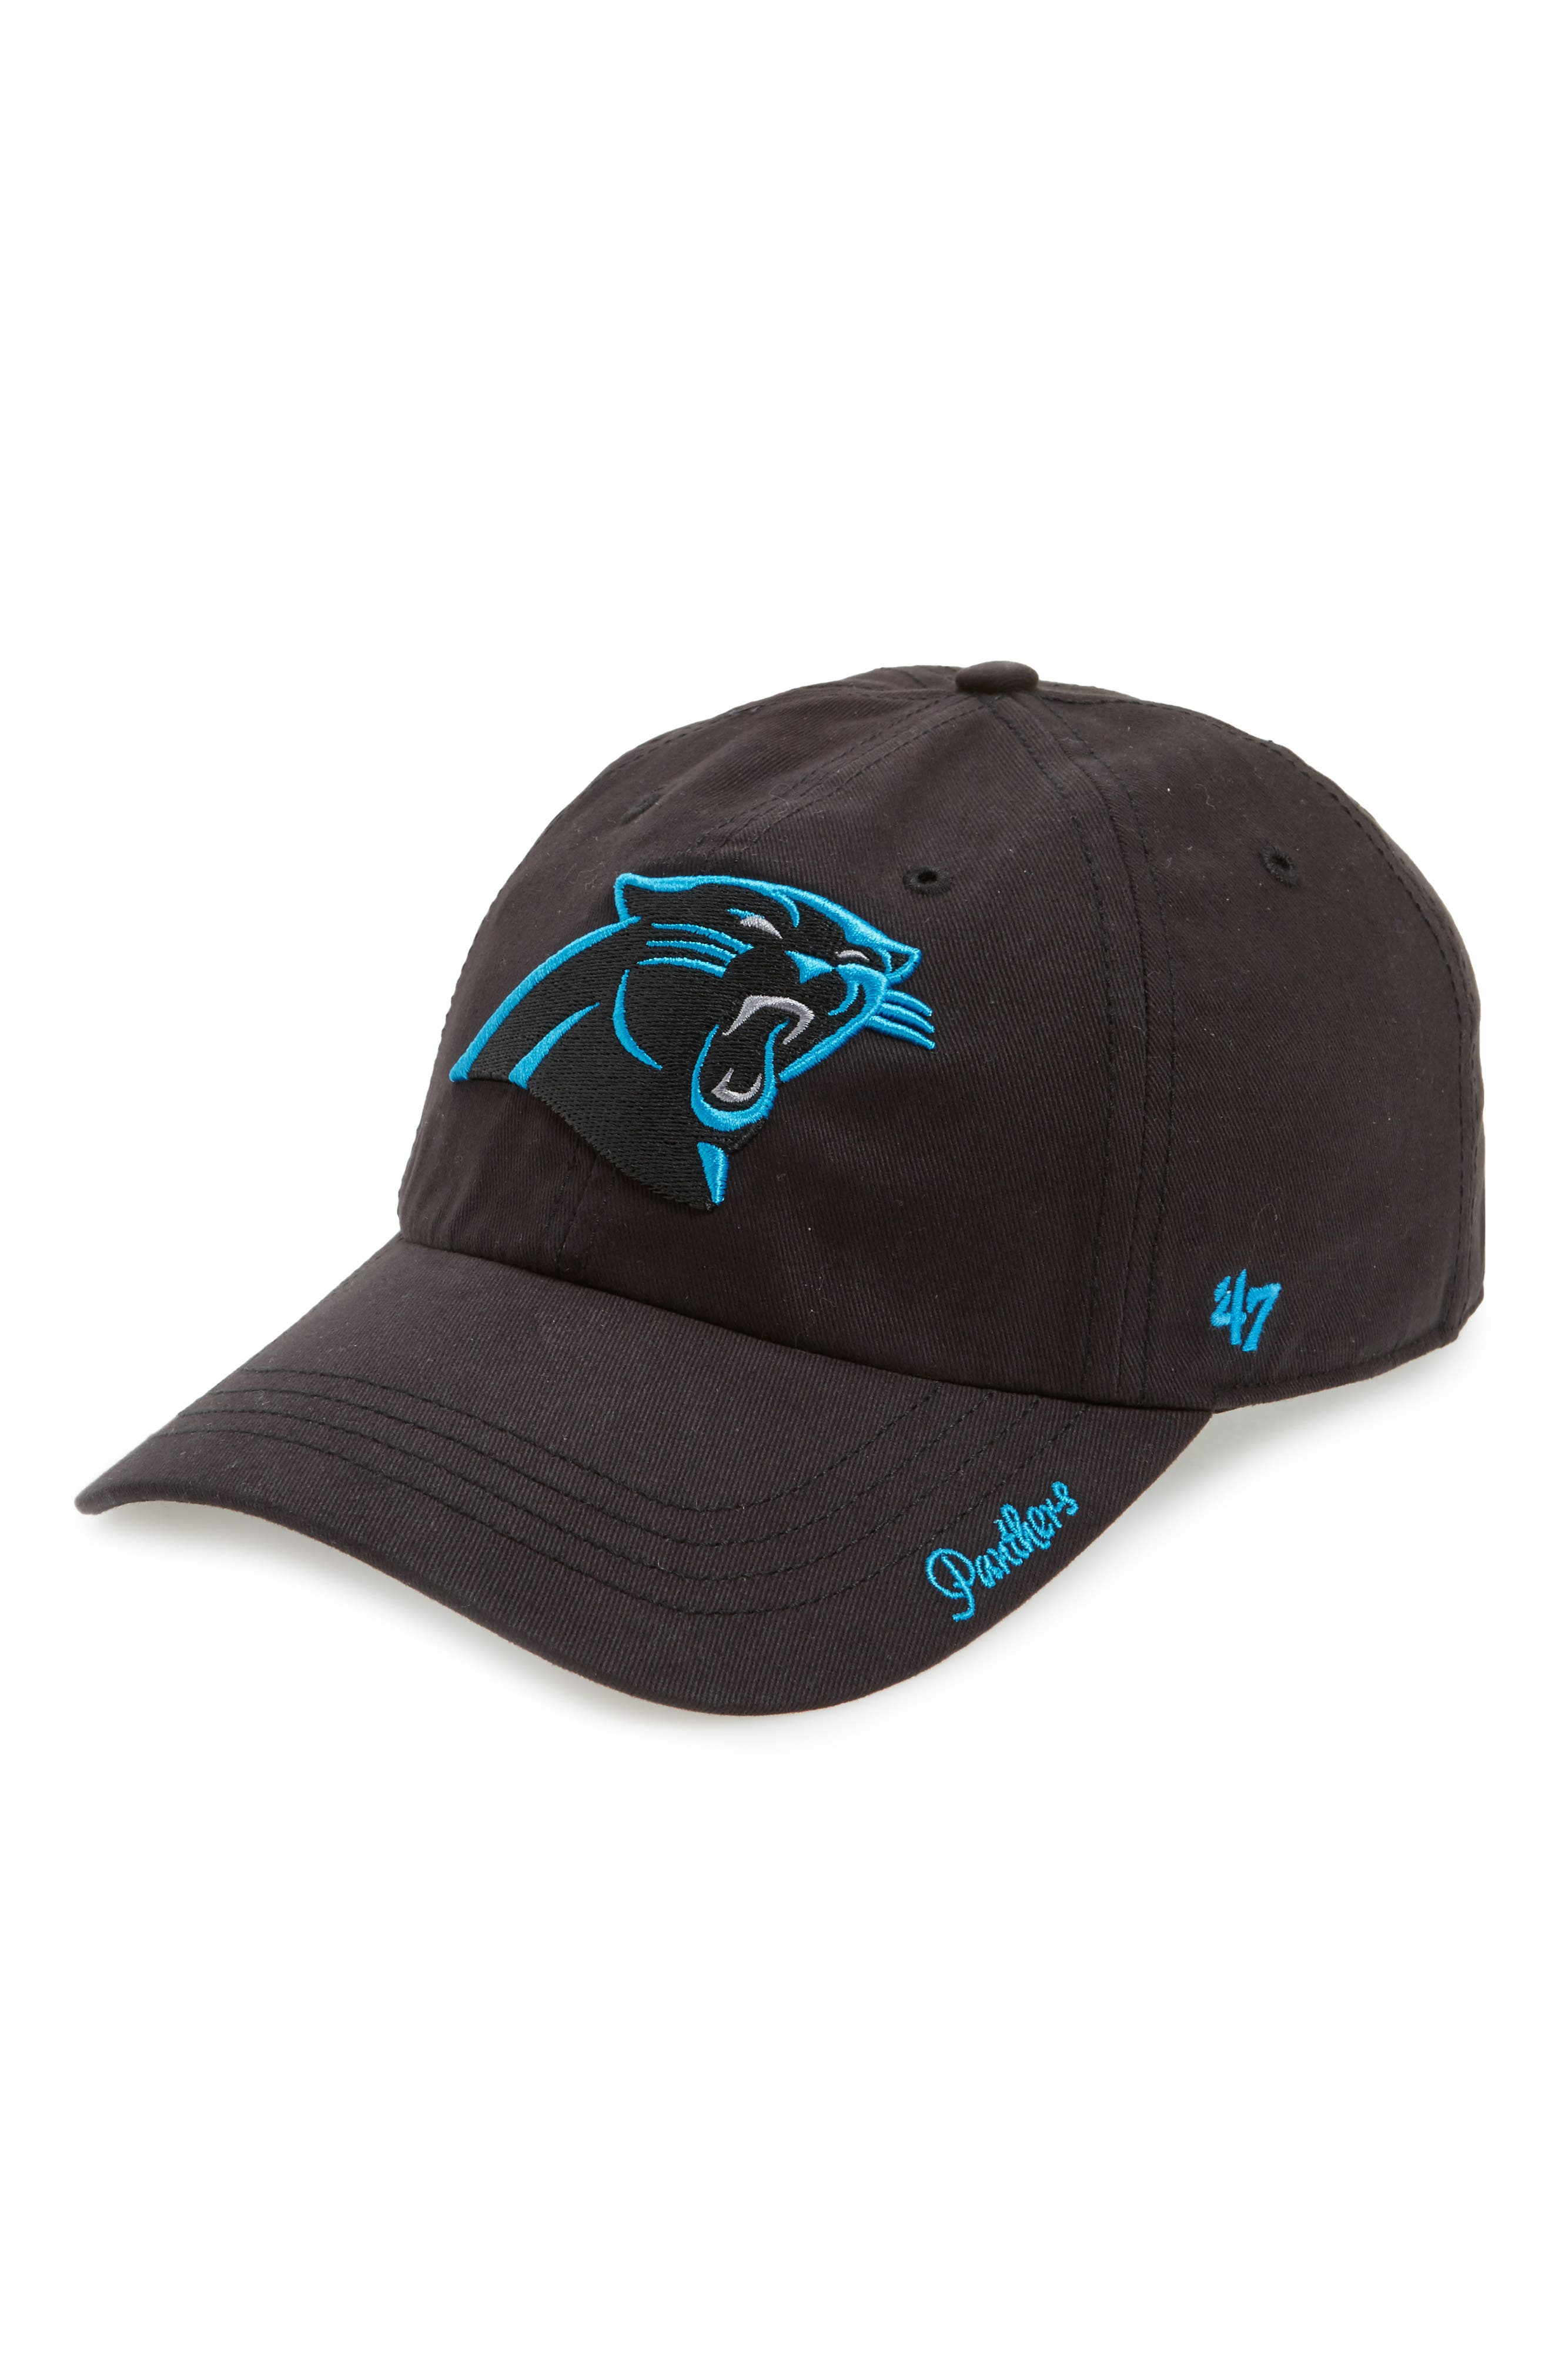 Main Image - '47 Carolina Panthers Cap